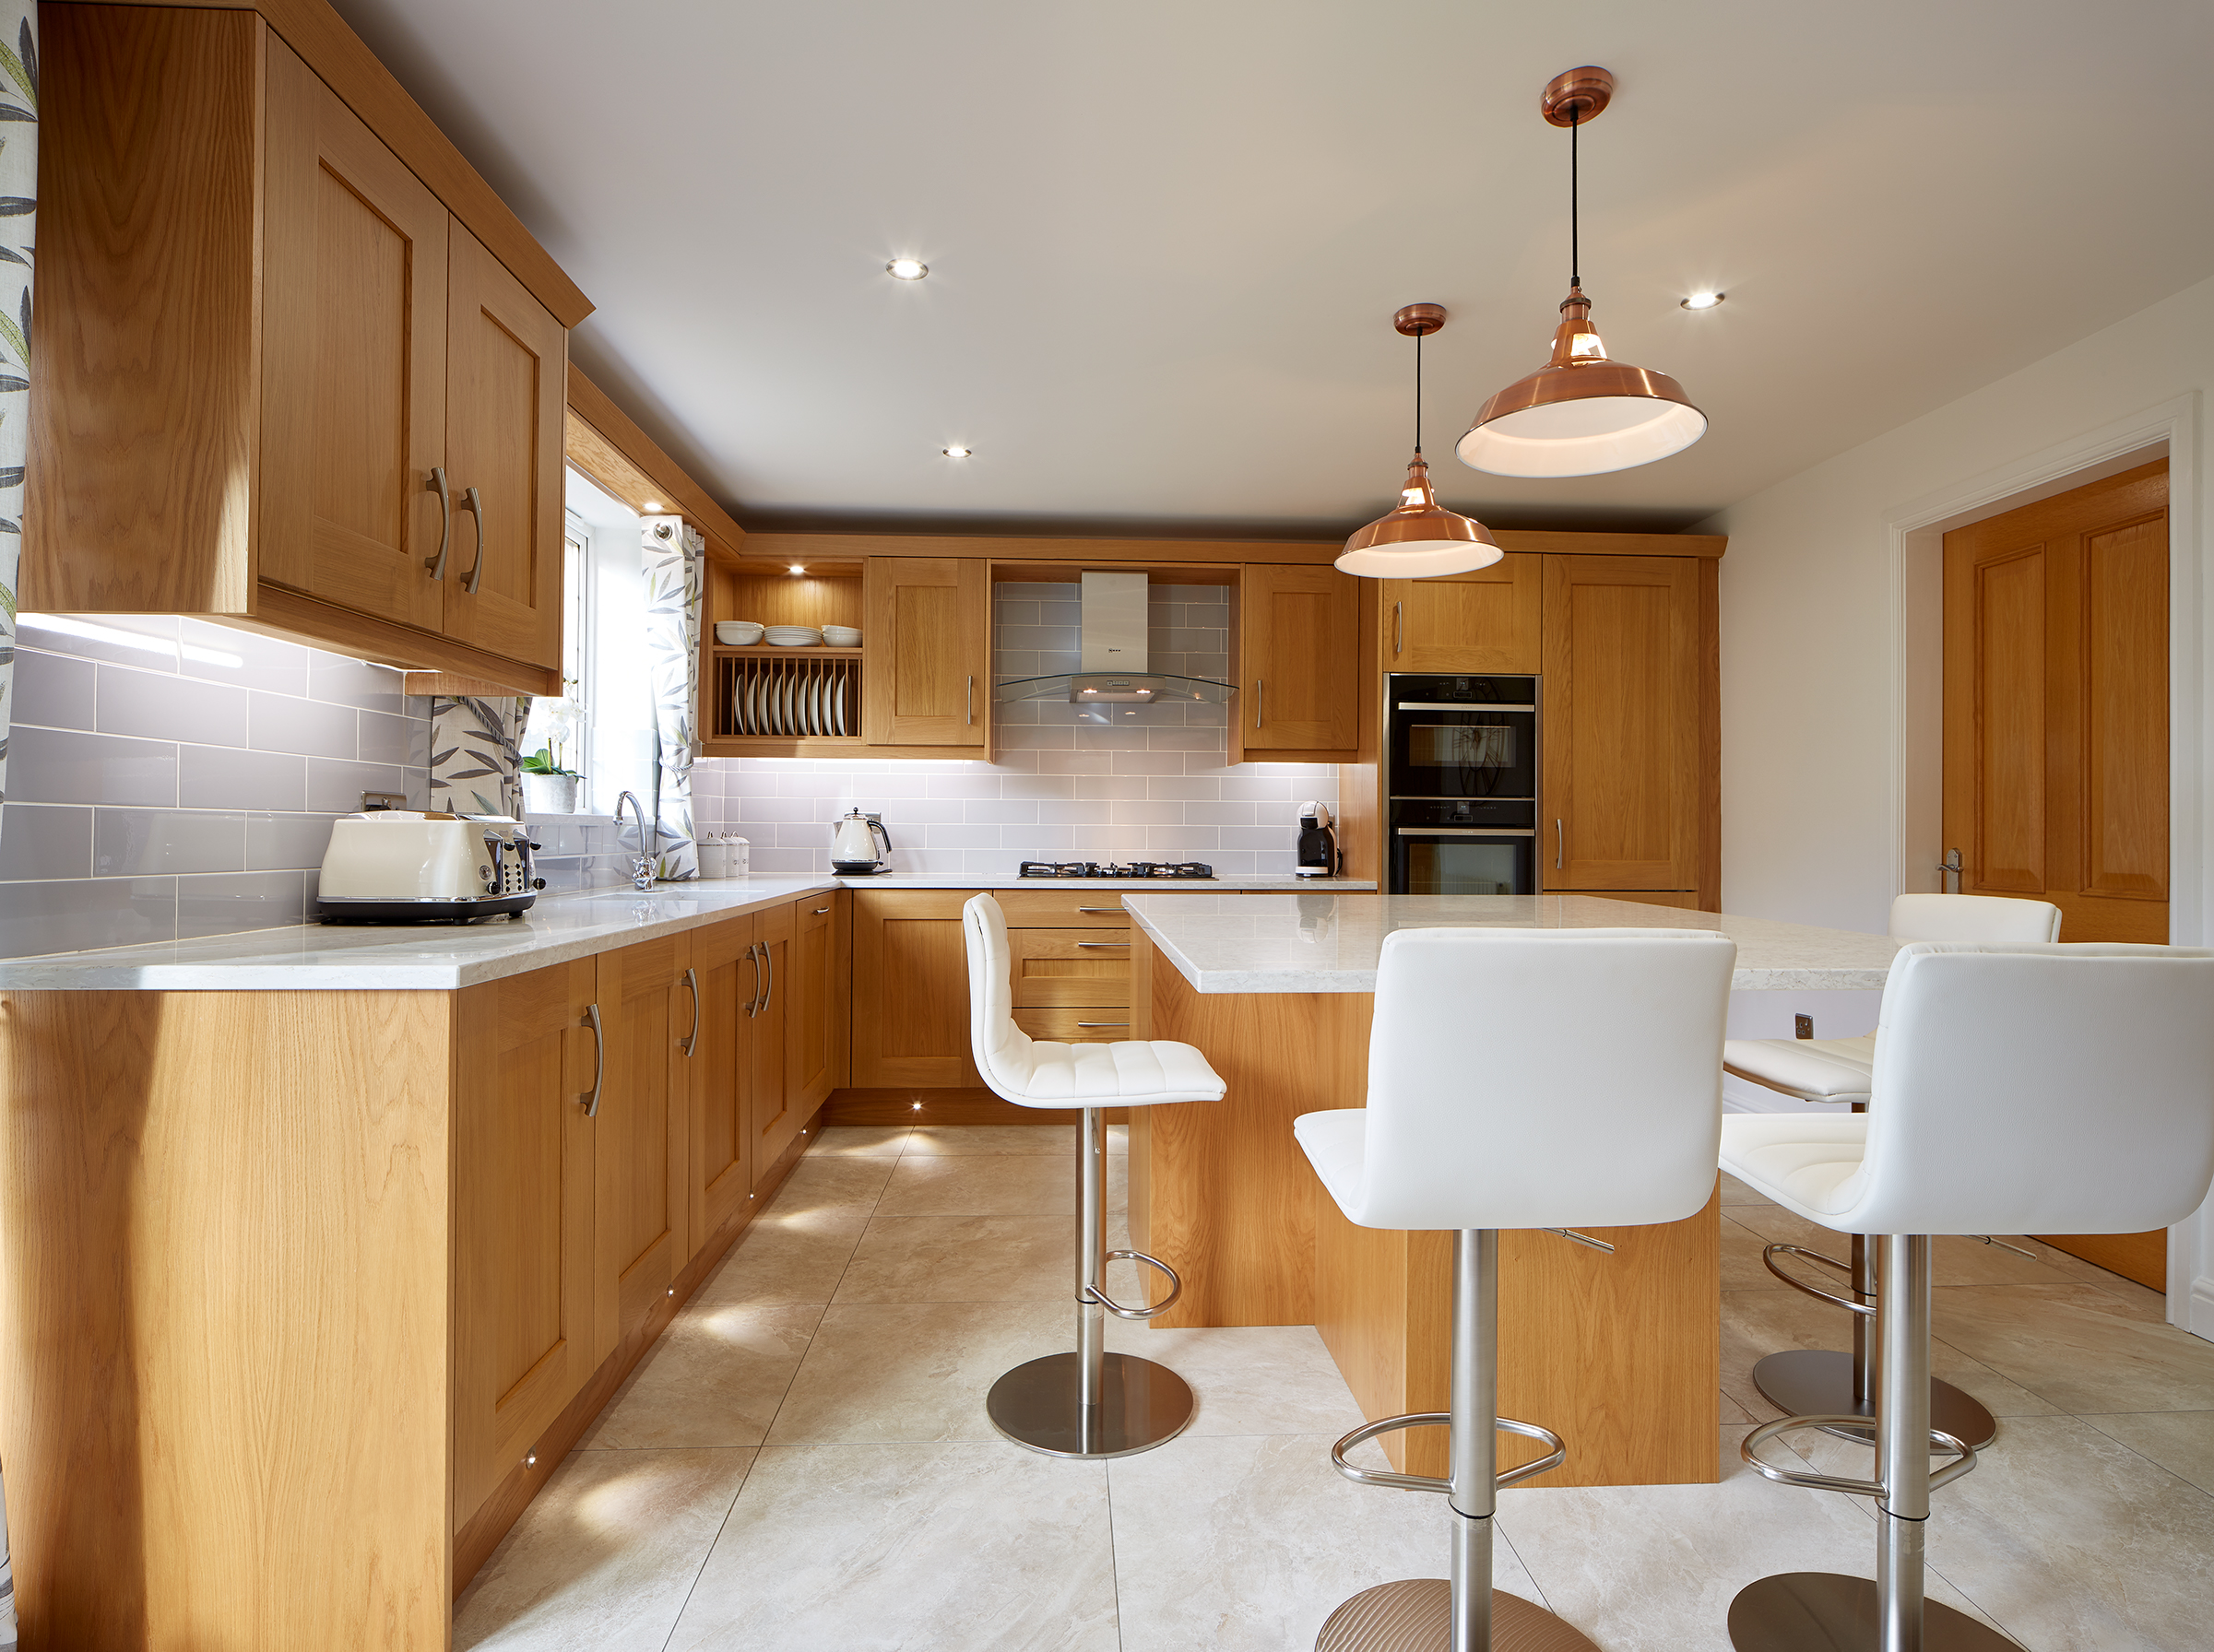 Hardwood oak kitchen with white worktops.